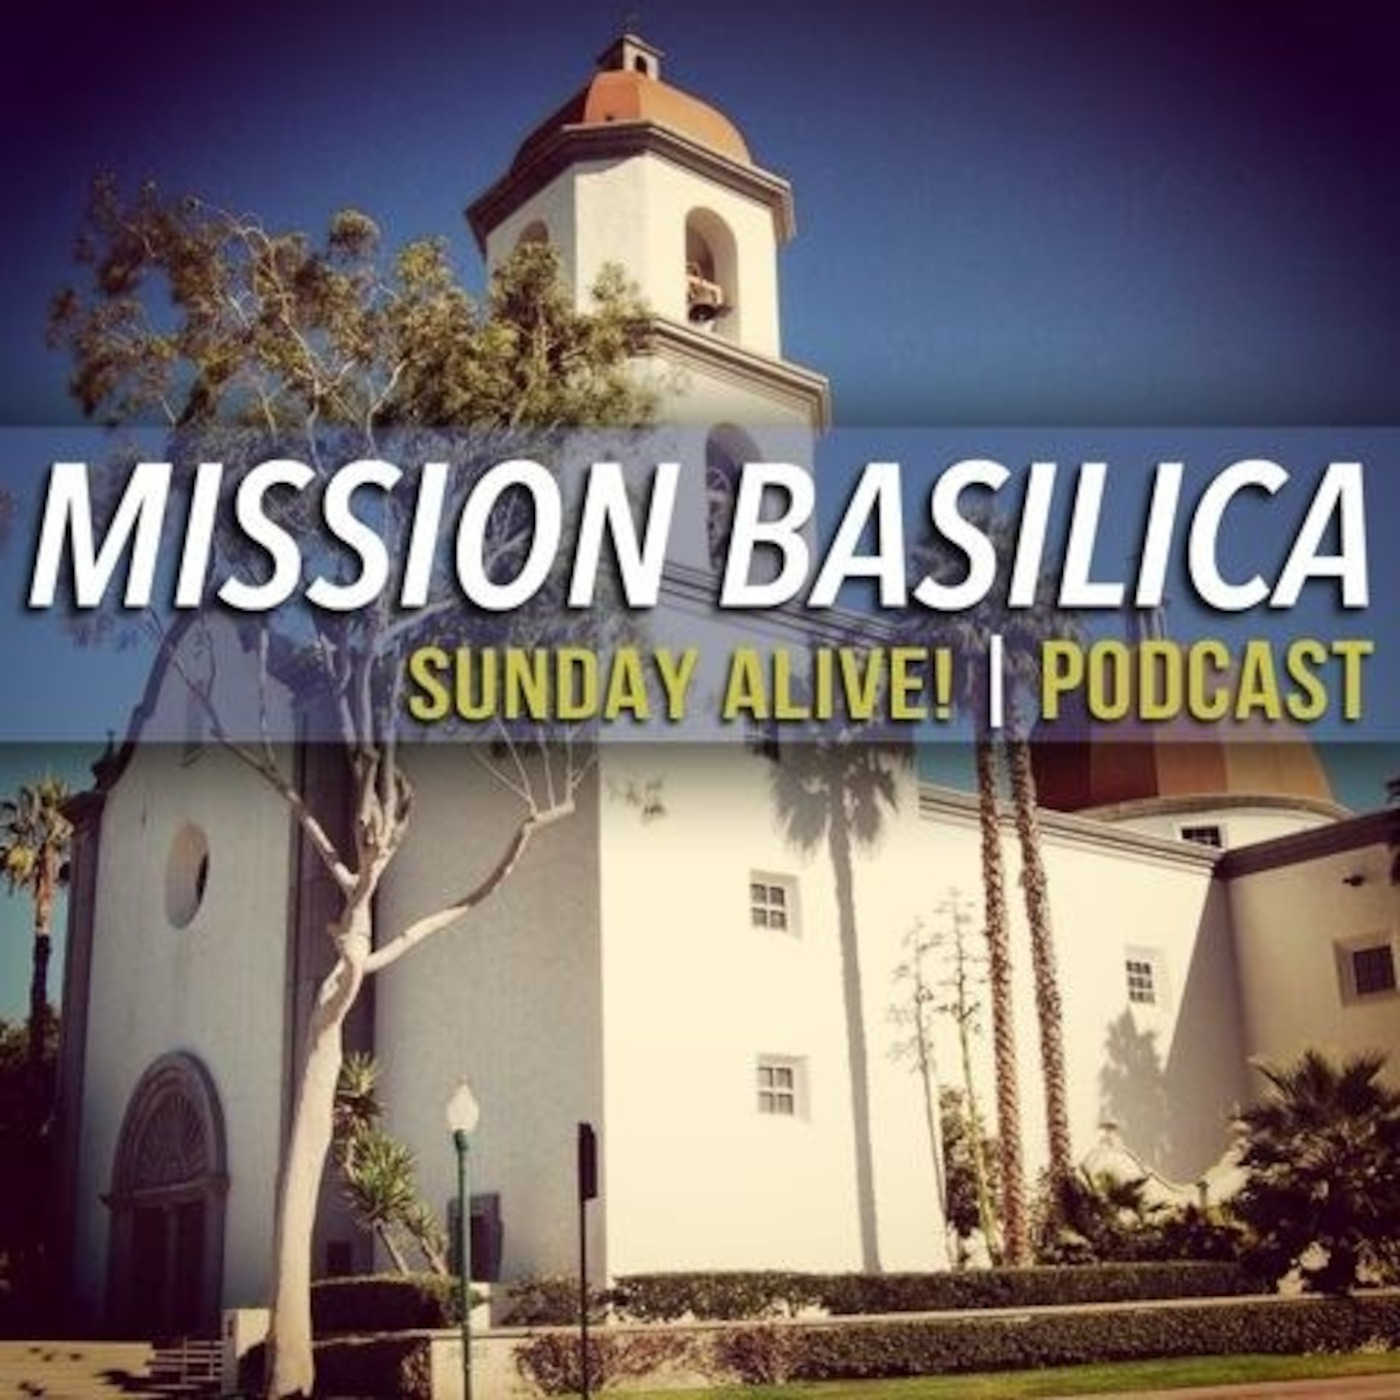 Sunday Alive! Podcast